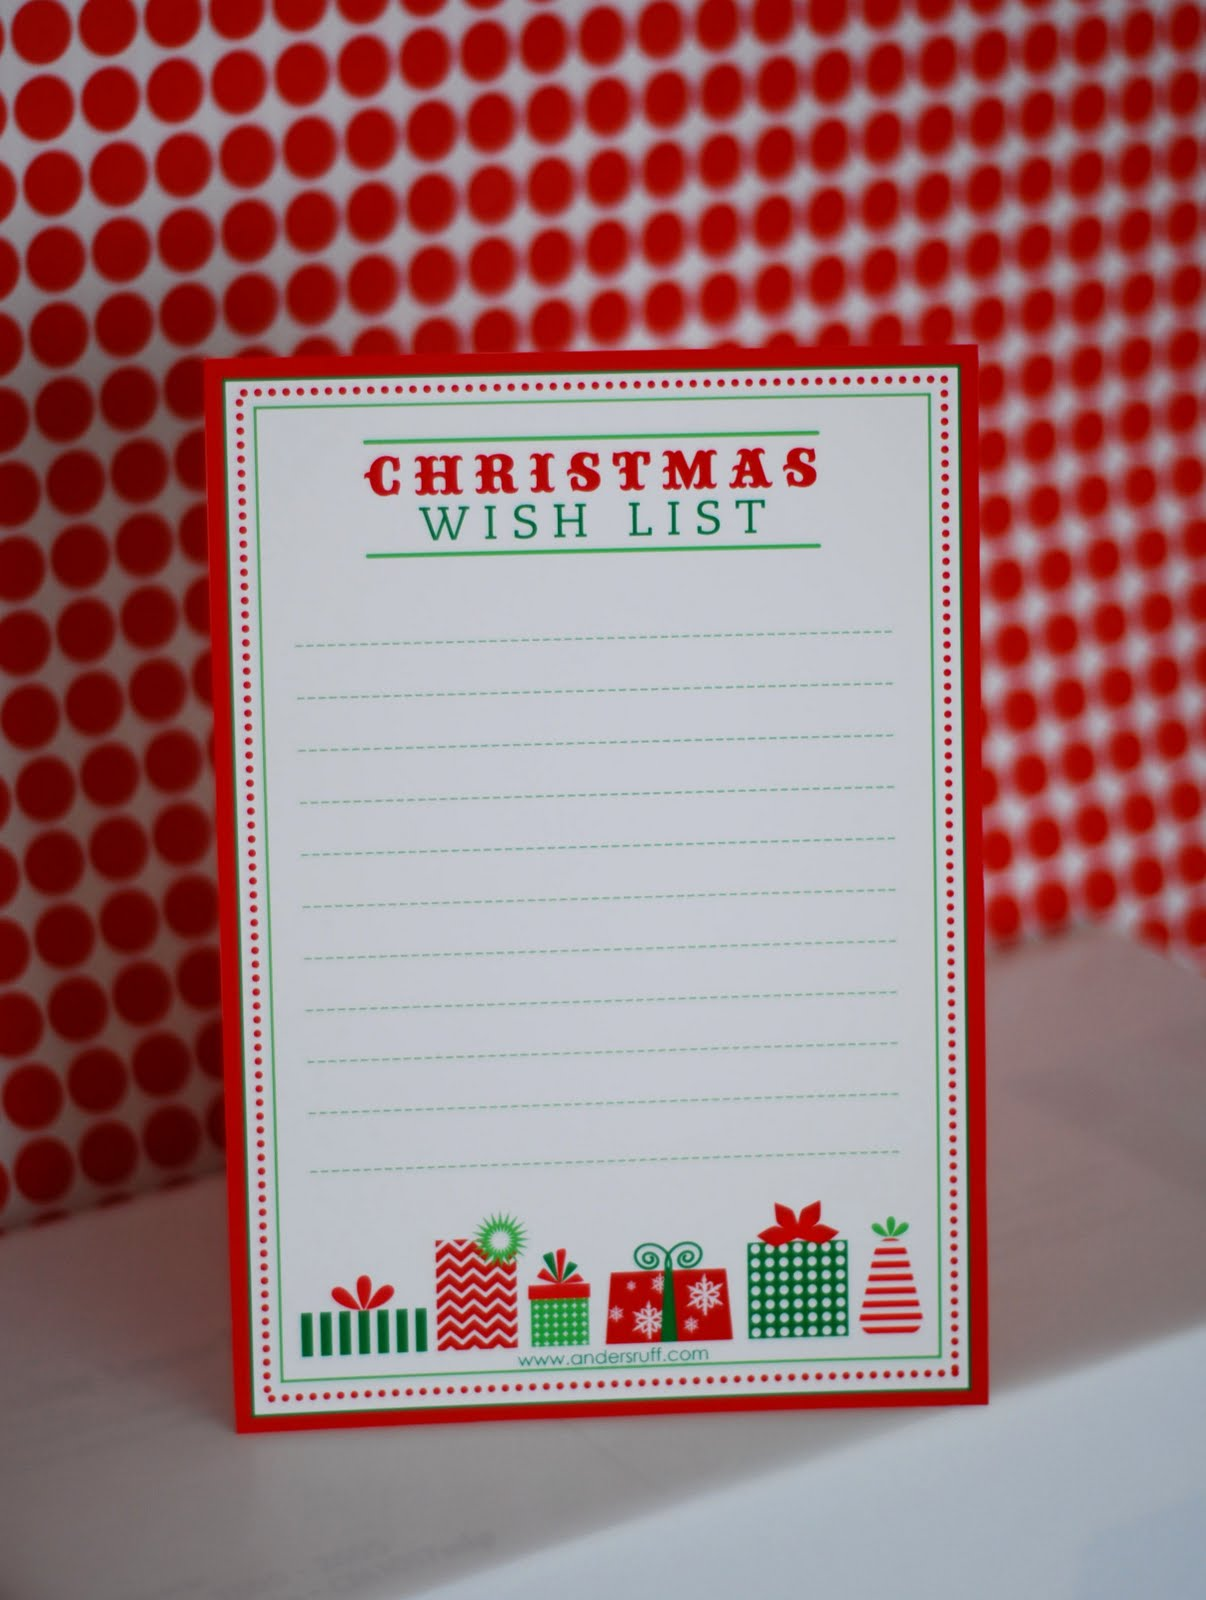 Printable Christmas Wish List Pictures Wallpapers